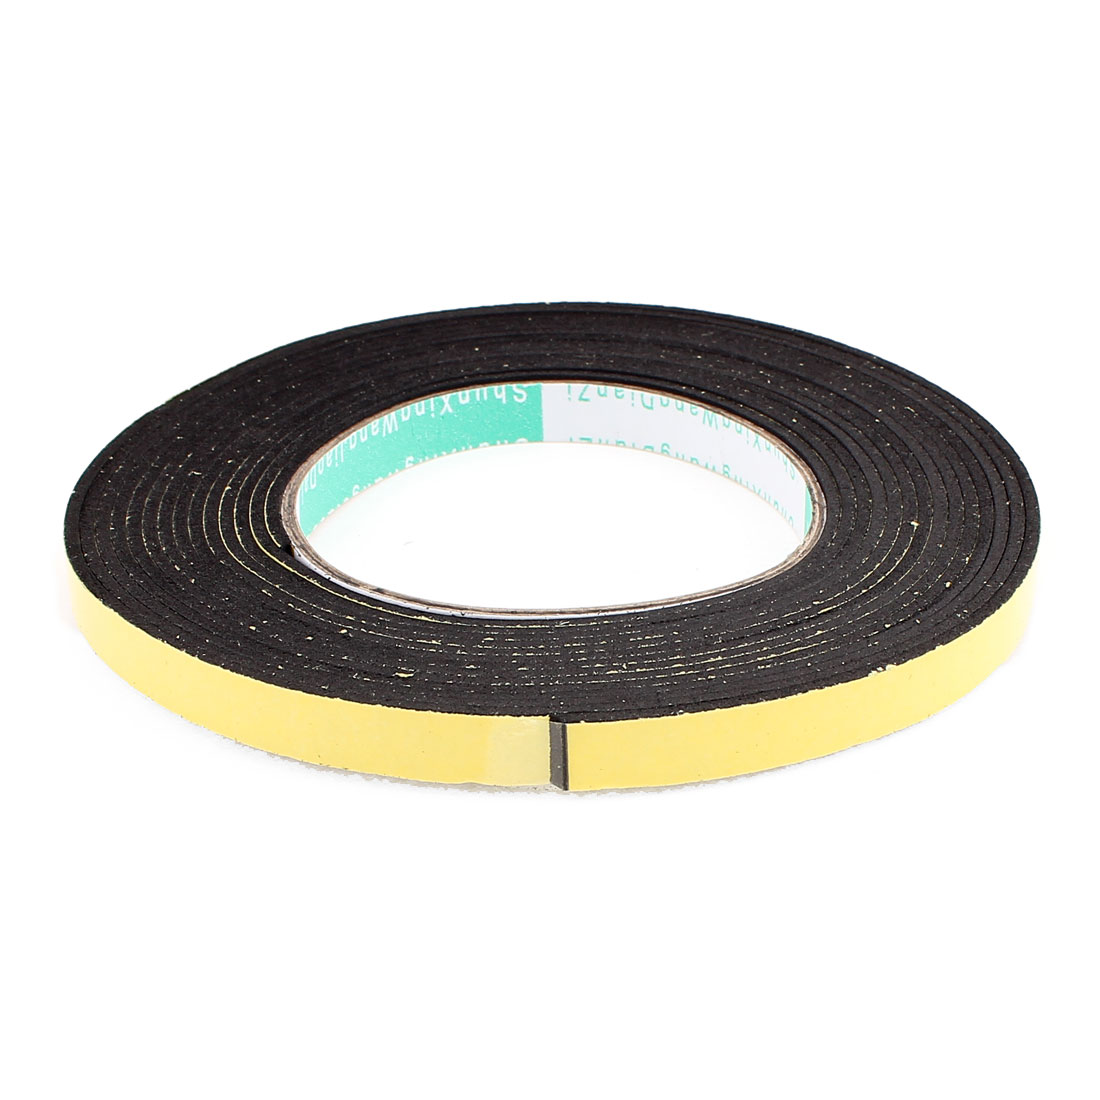 5 Meters 10mm x 2mm Single Side Adhesive EVA Foam Sealing Tap